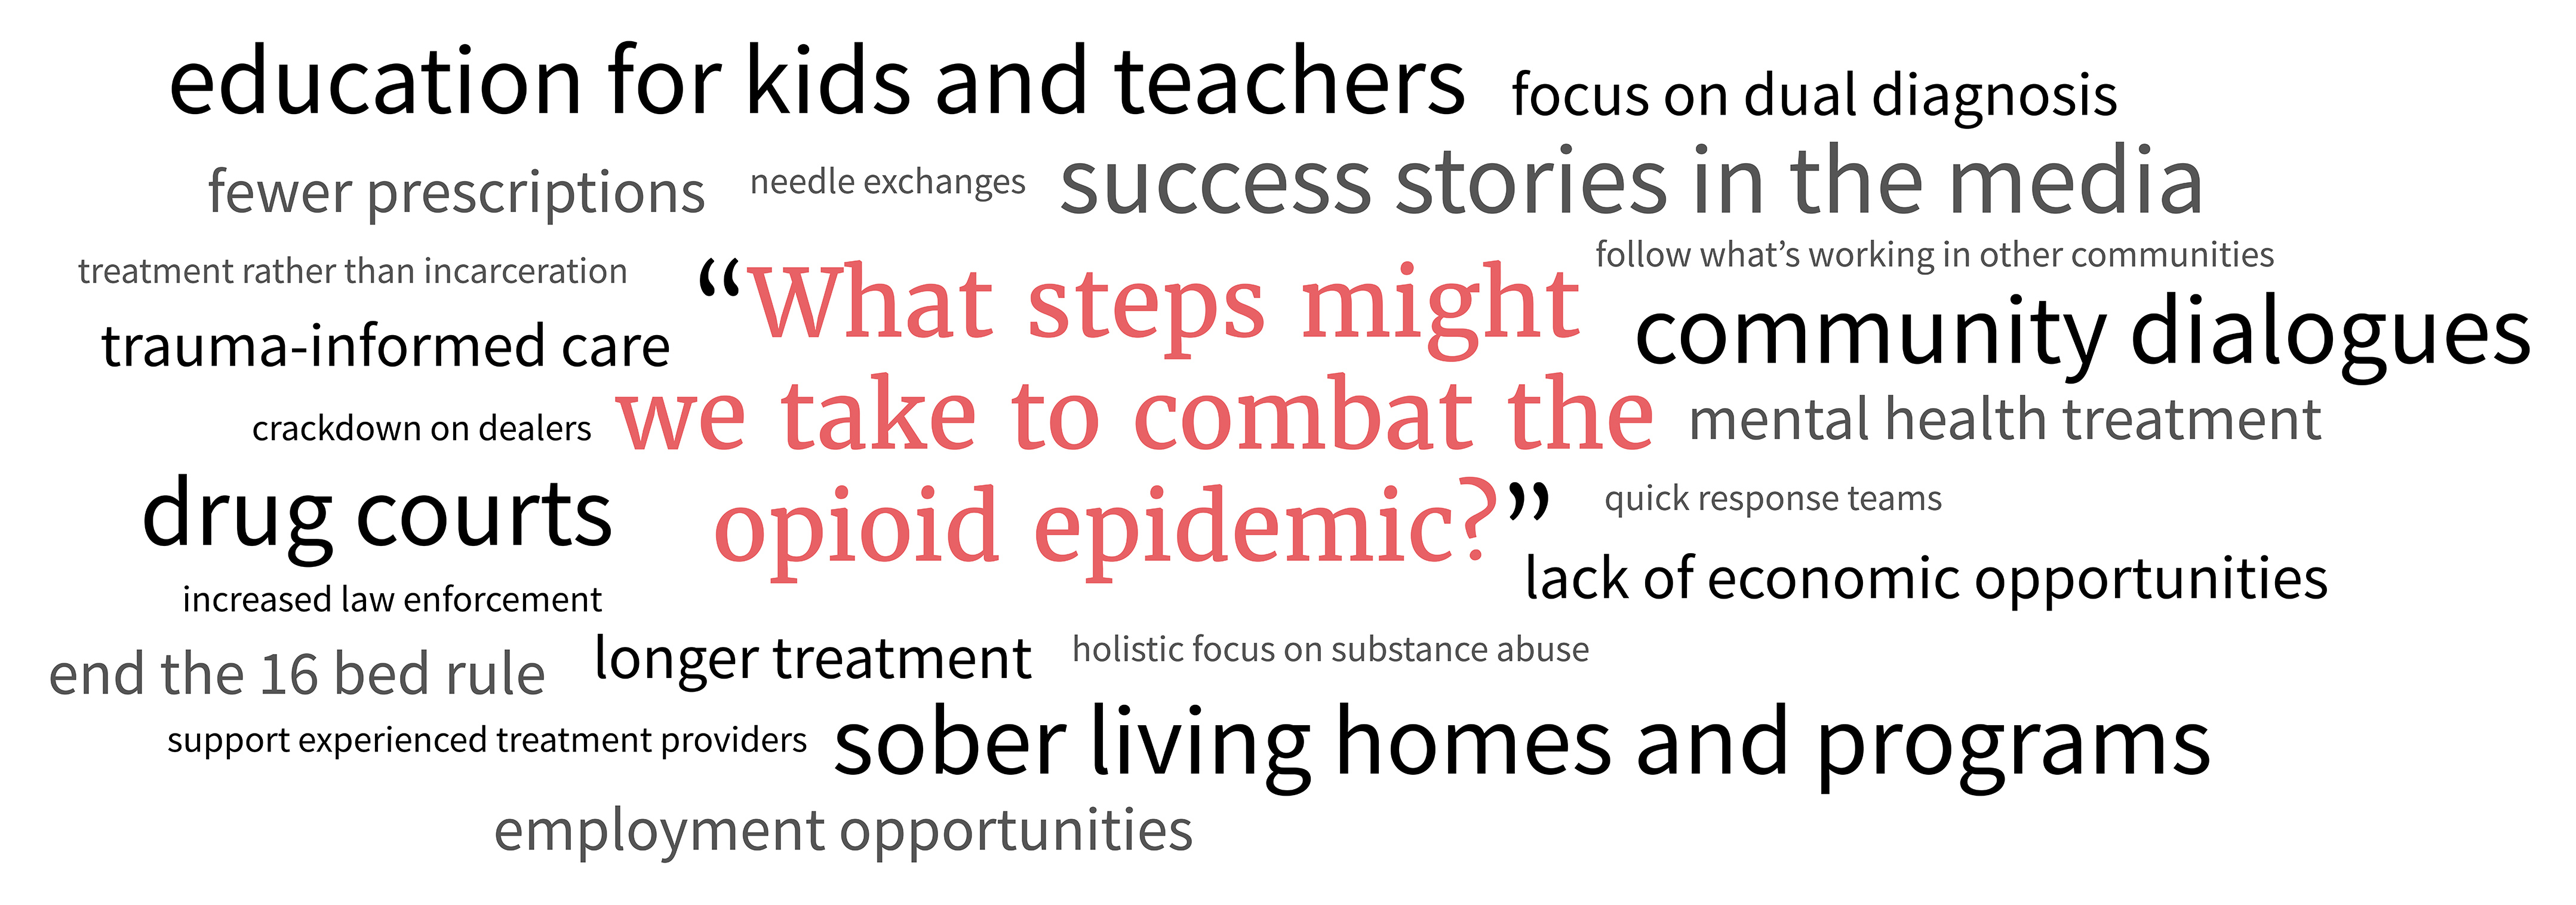 Steps to combat the opioid epidemic